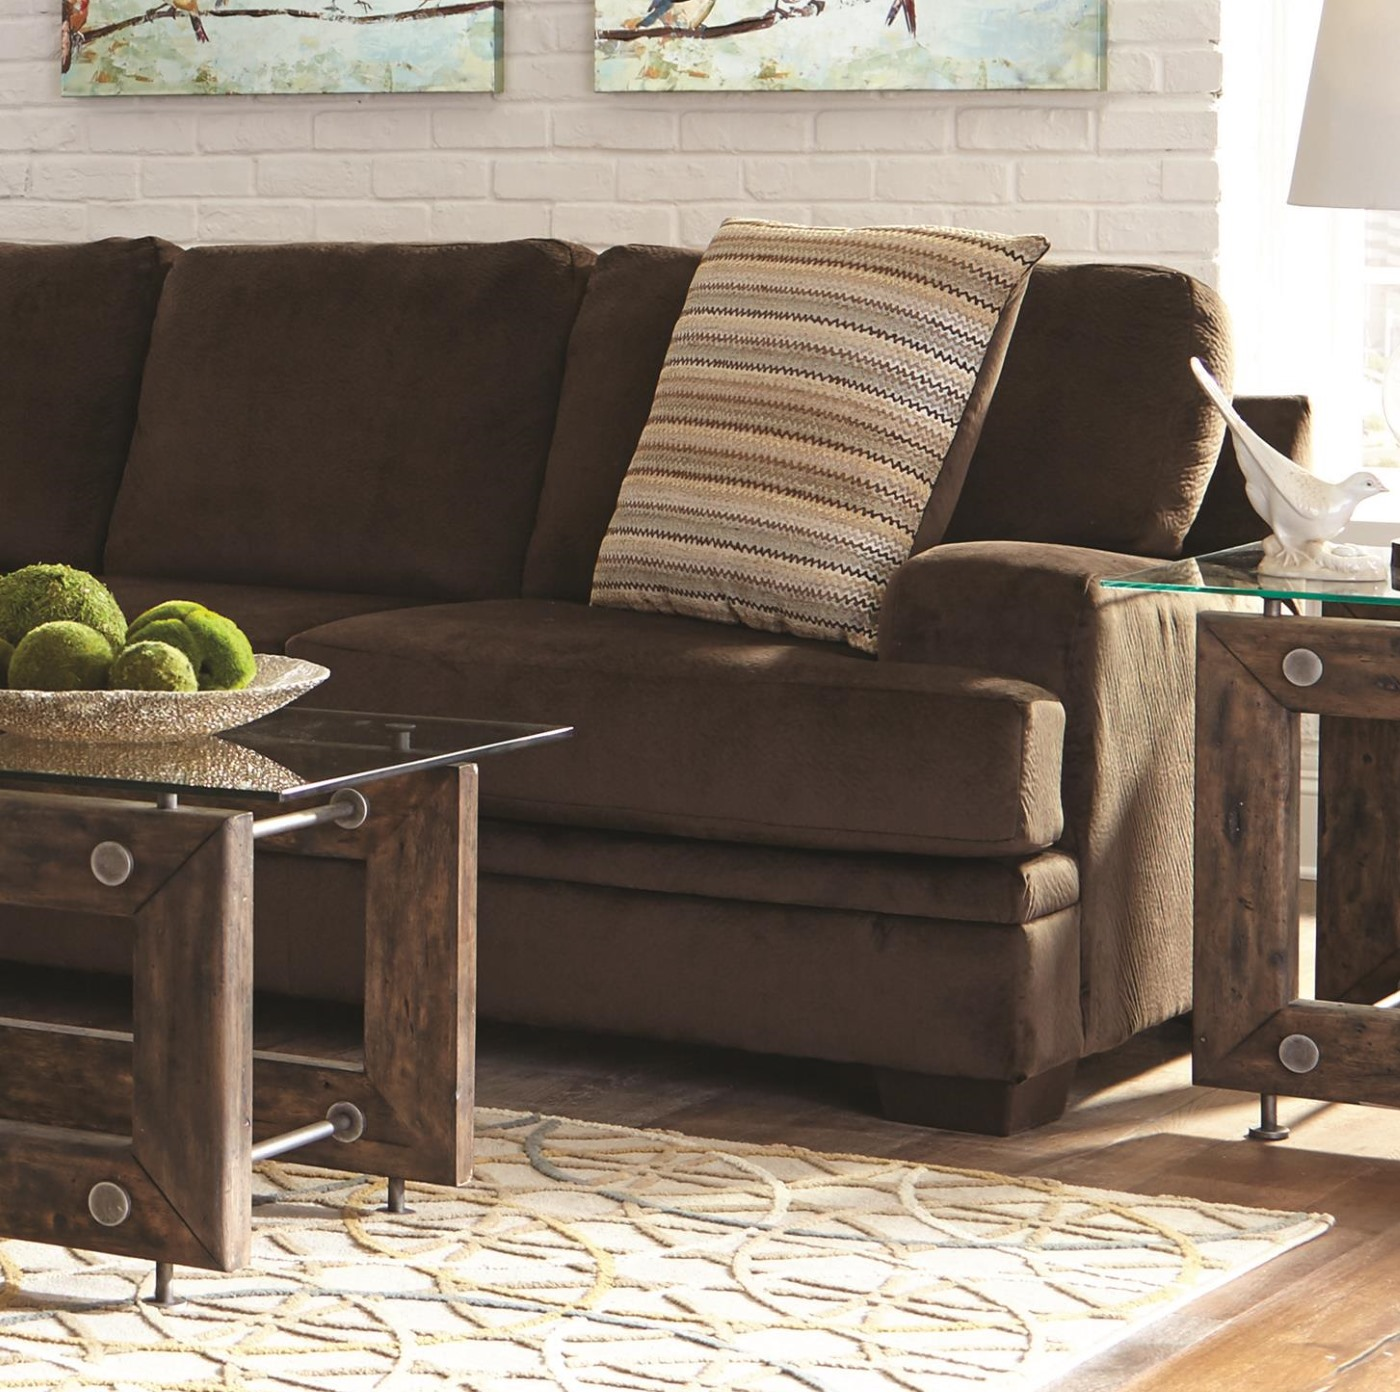 Robion sectional 501147 dallas designer furniture 4 less for Furniture 4 less dallas tx